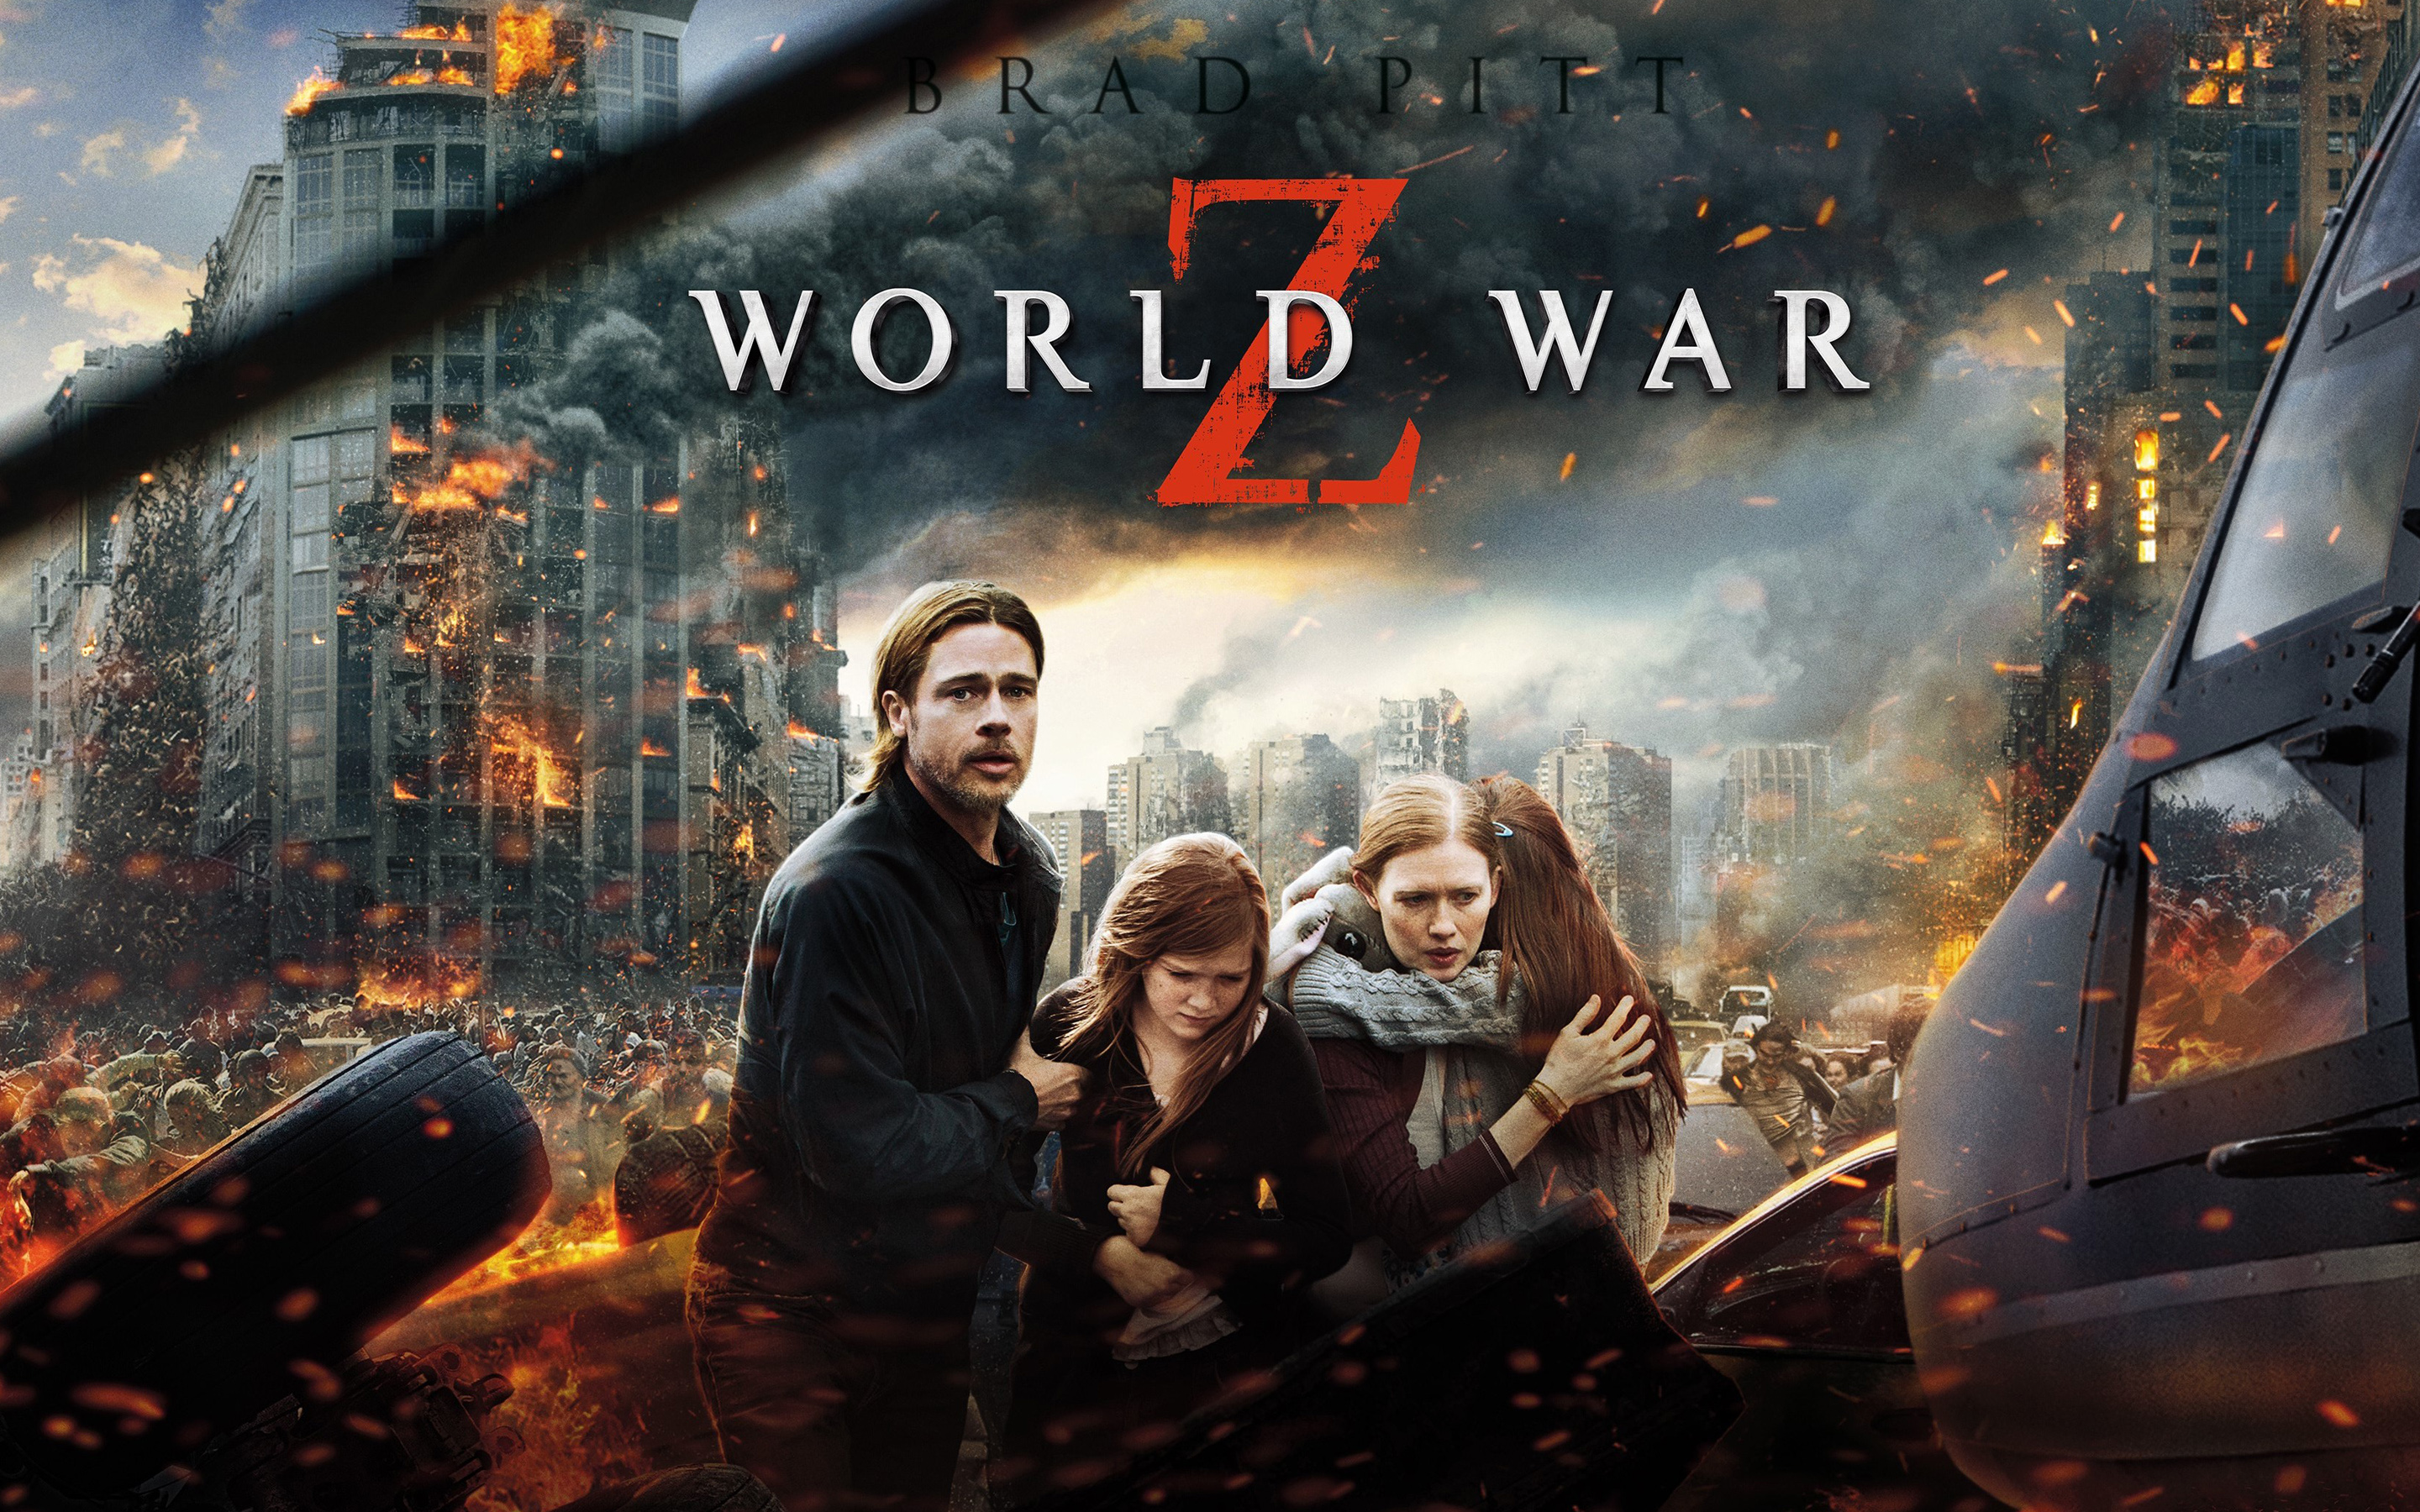 Recensione del film: WORLD WAR Z